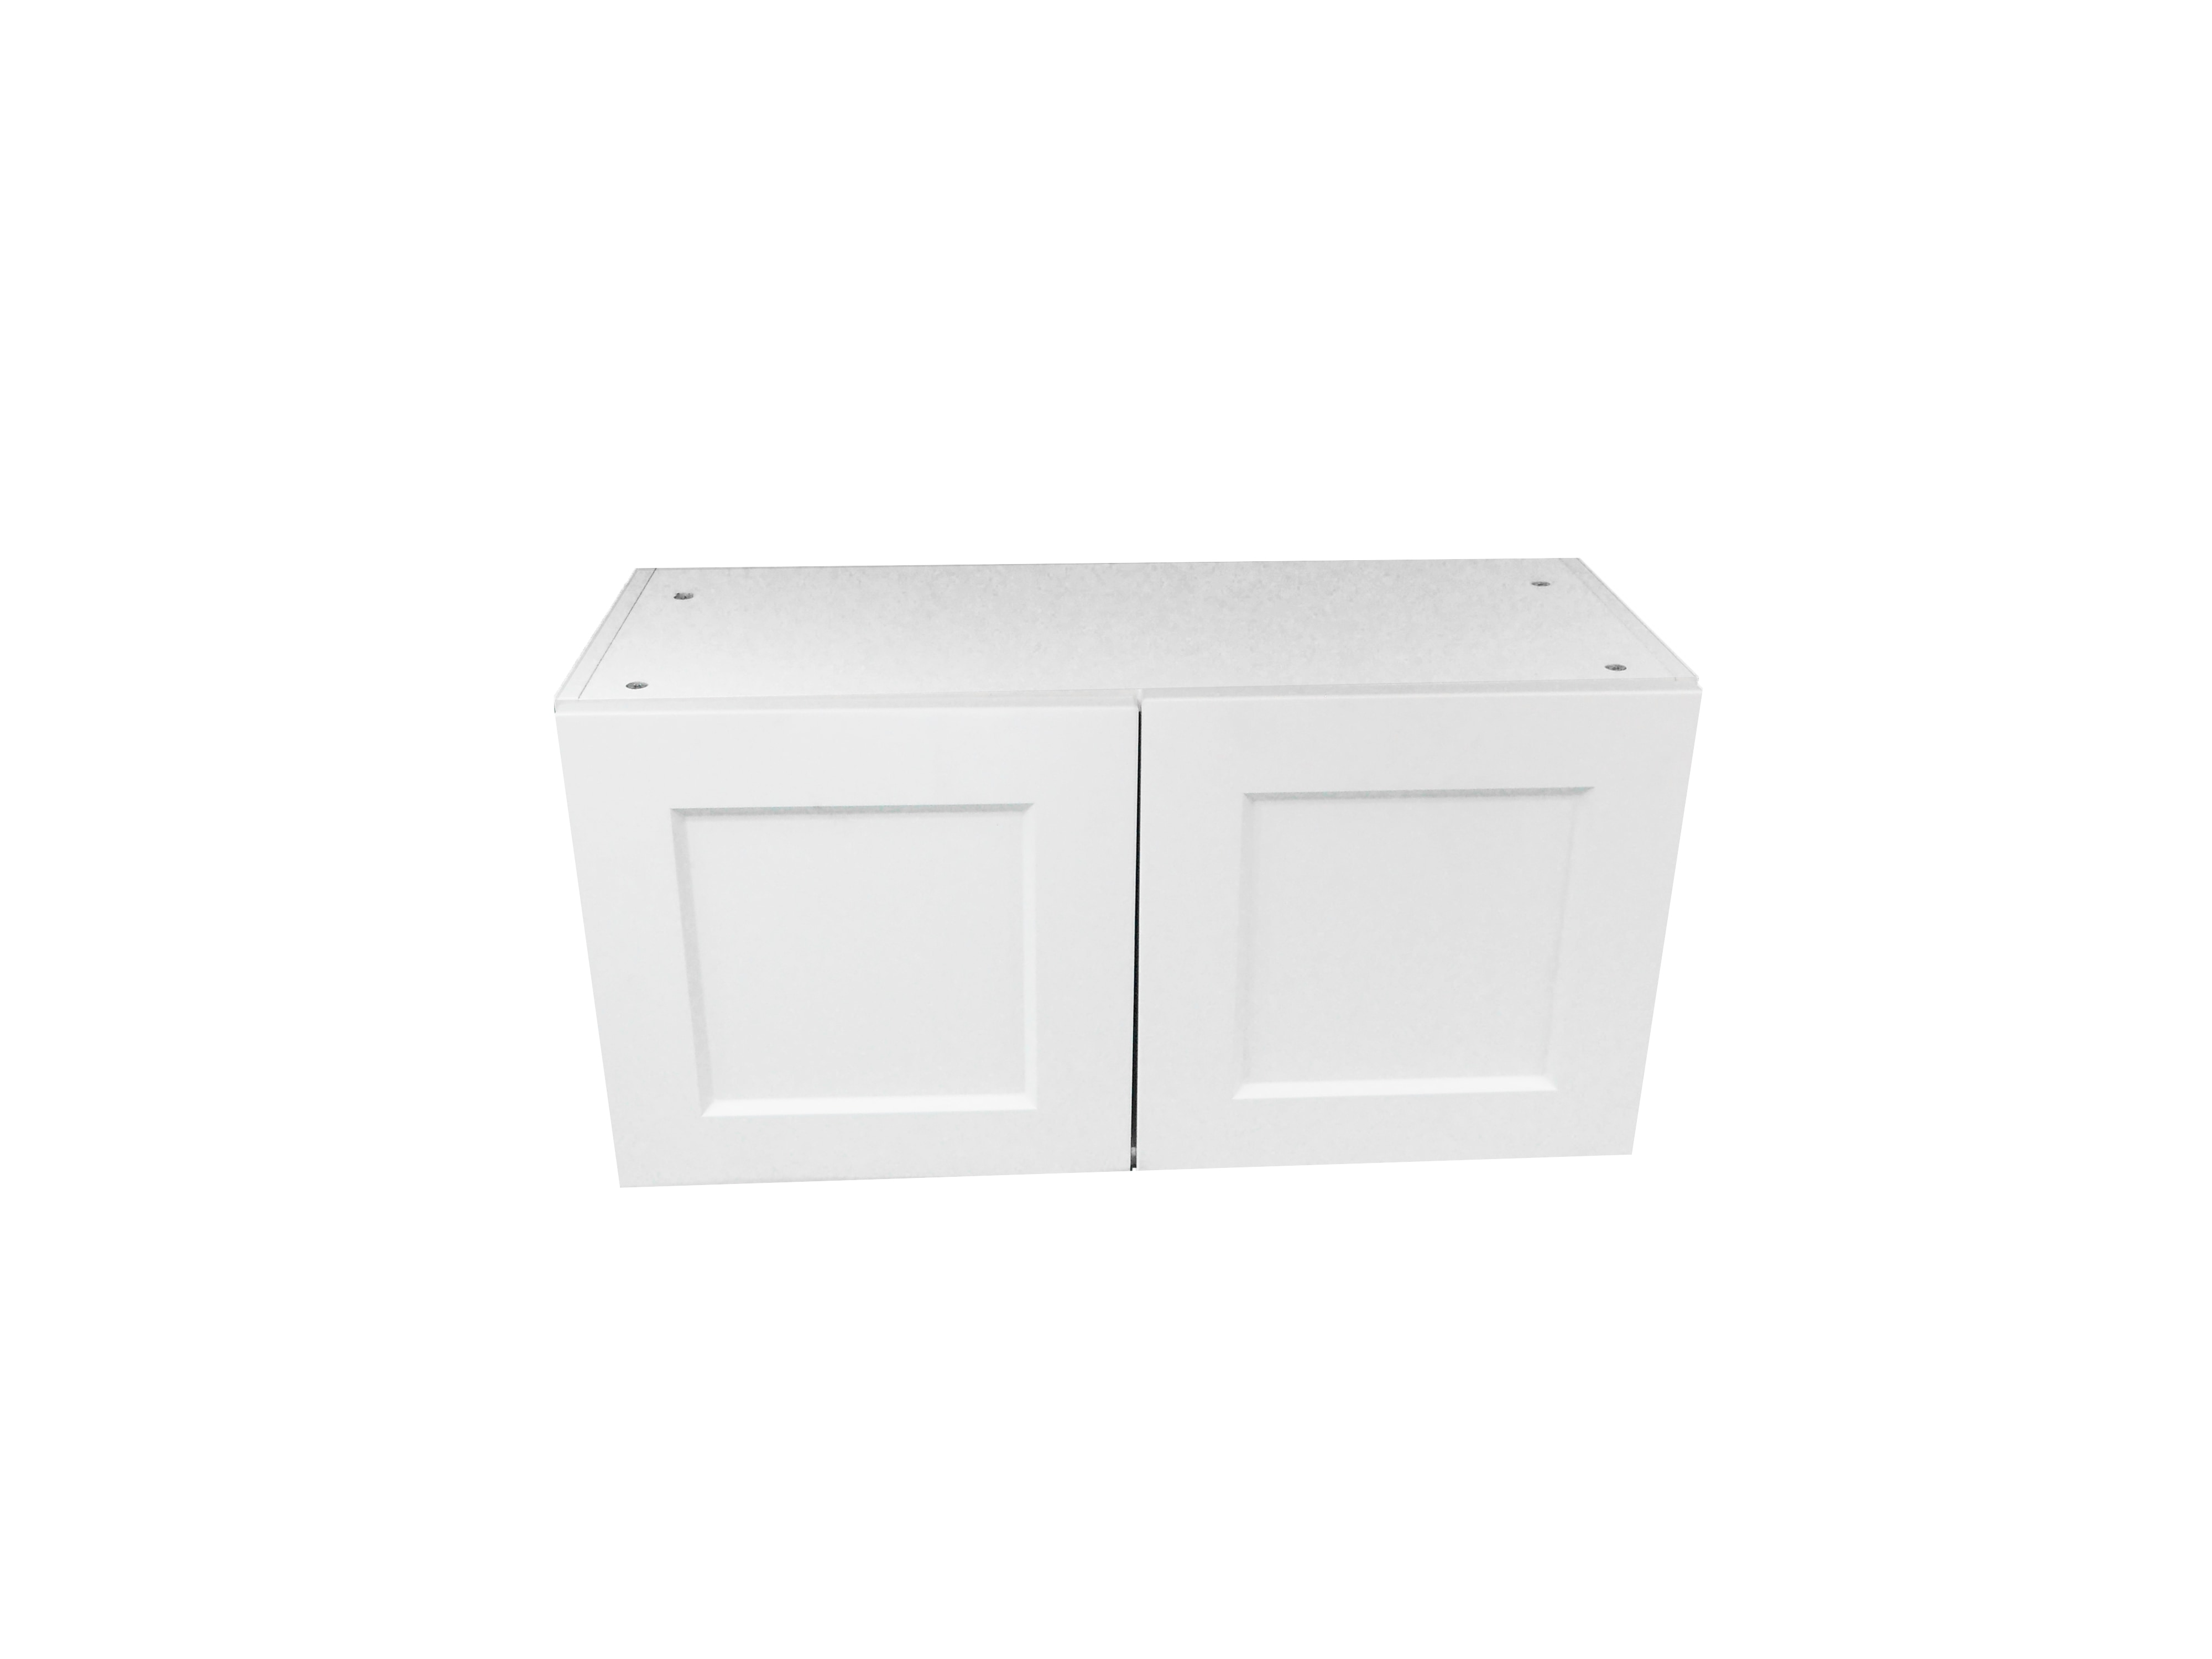 Appliance Wall Cabinet with 2 Doors / Wistler White / Flat Panel White / 30x12 Whistler White 0